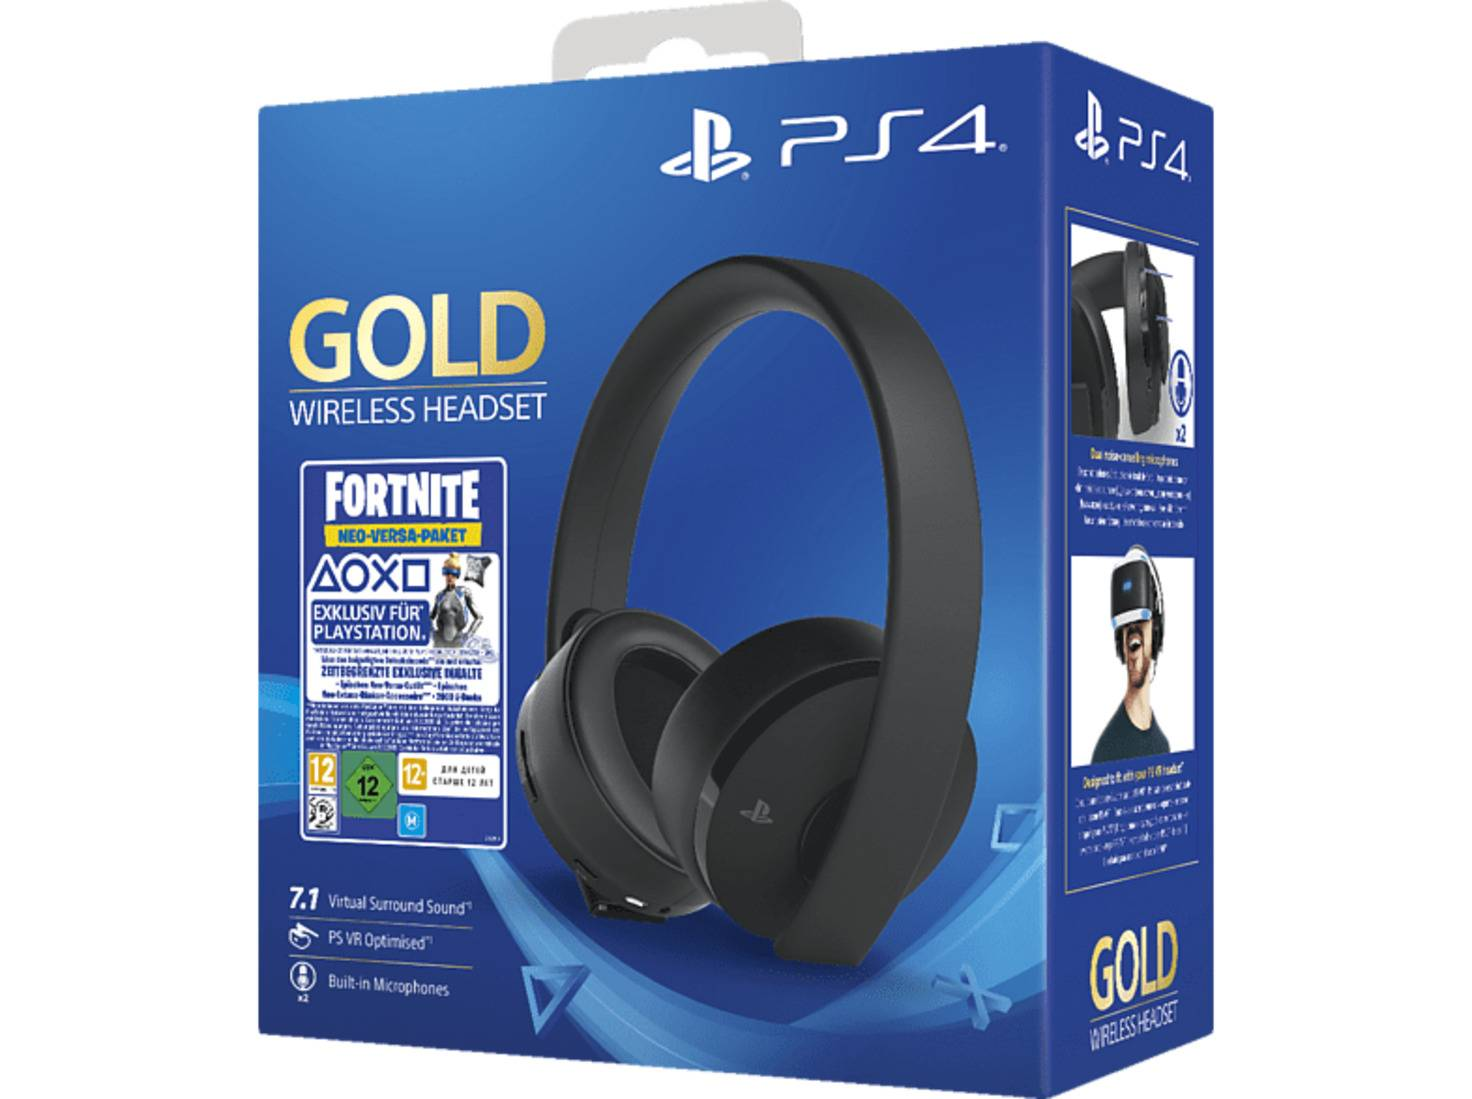 SONY-Wireless-Headset-Gold-Edition_Fortnite-Neo-Versa-Bundle-Gaming-Headset--Schwarz